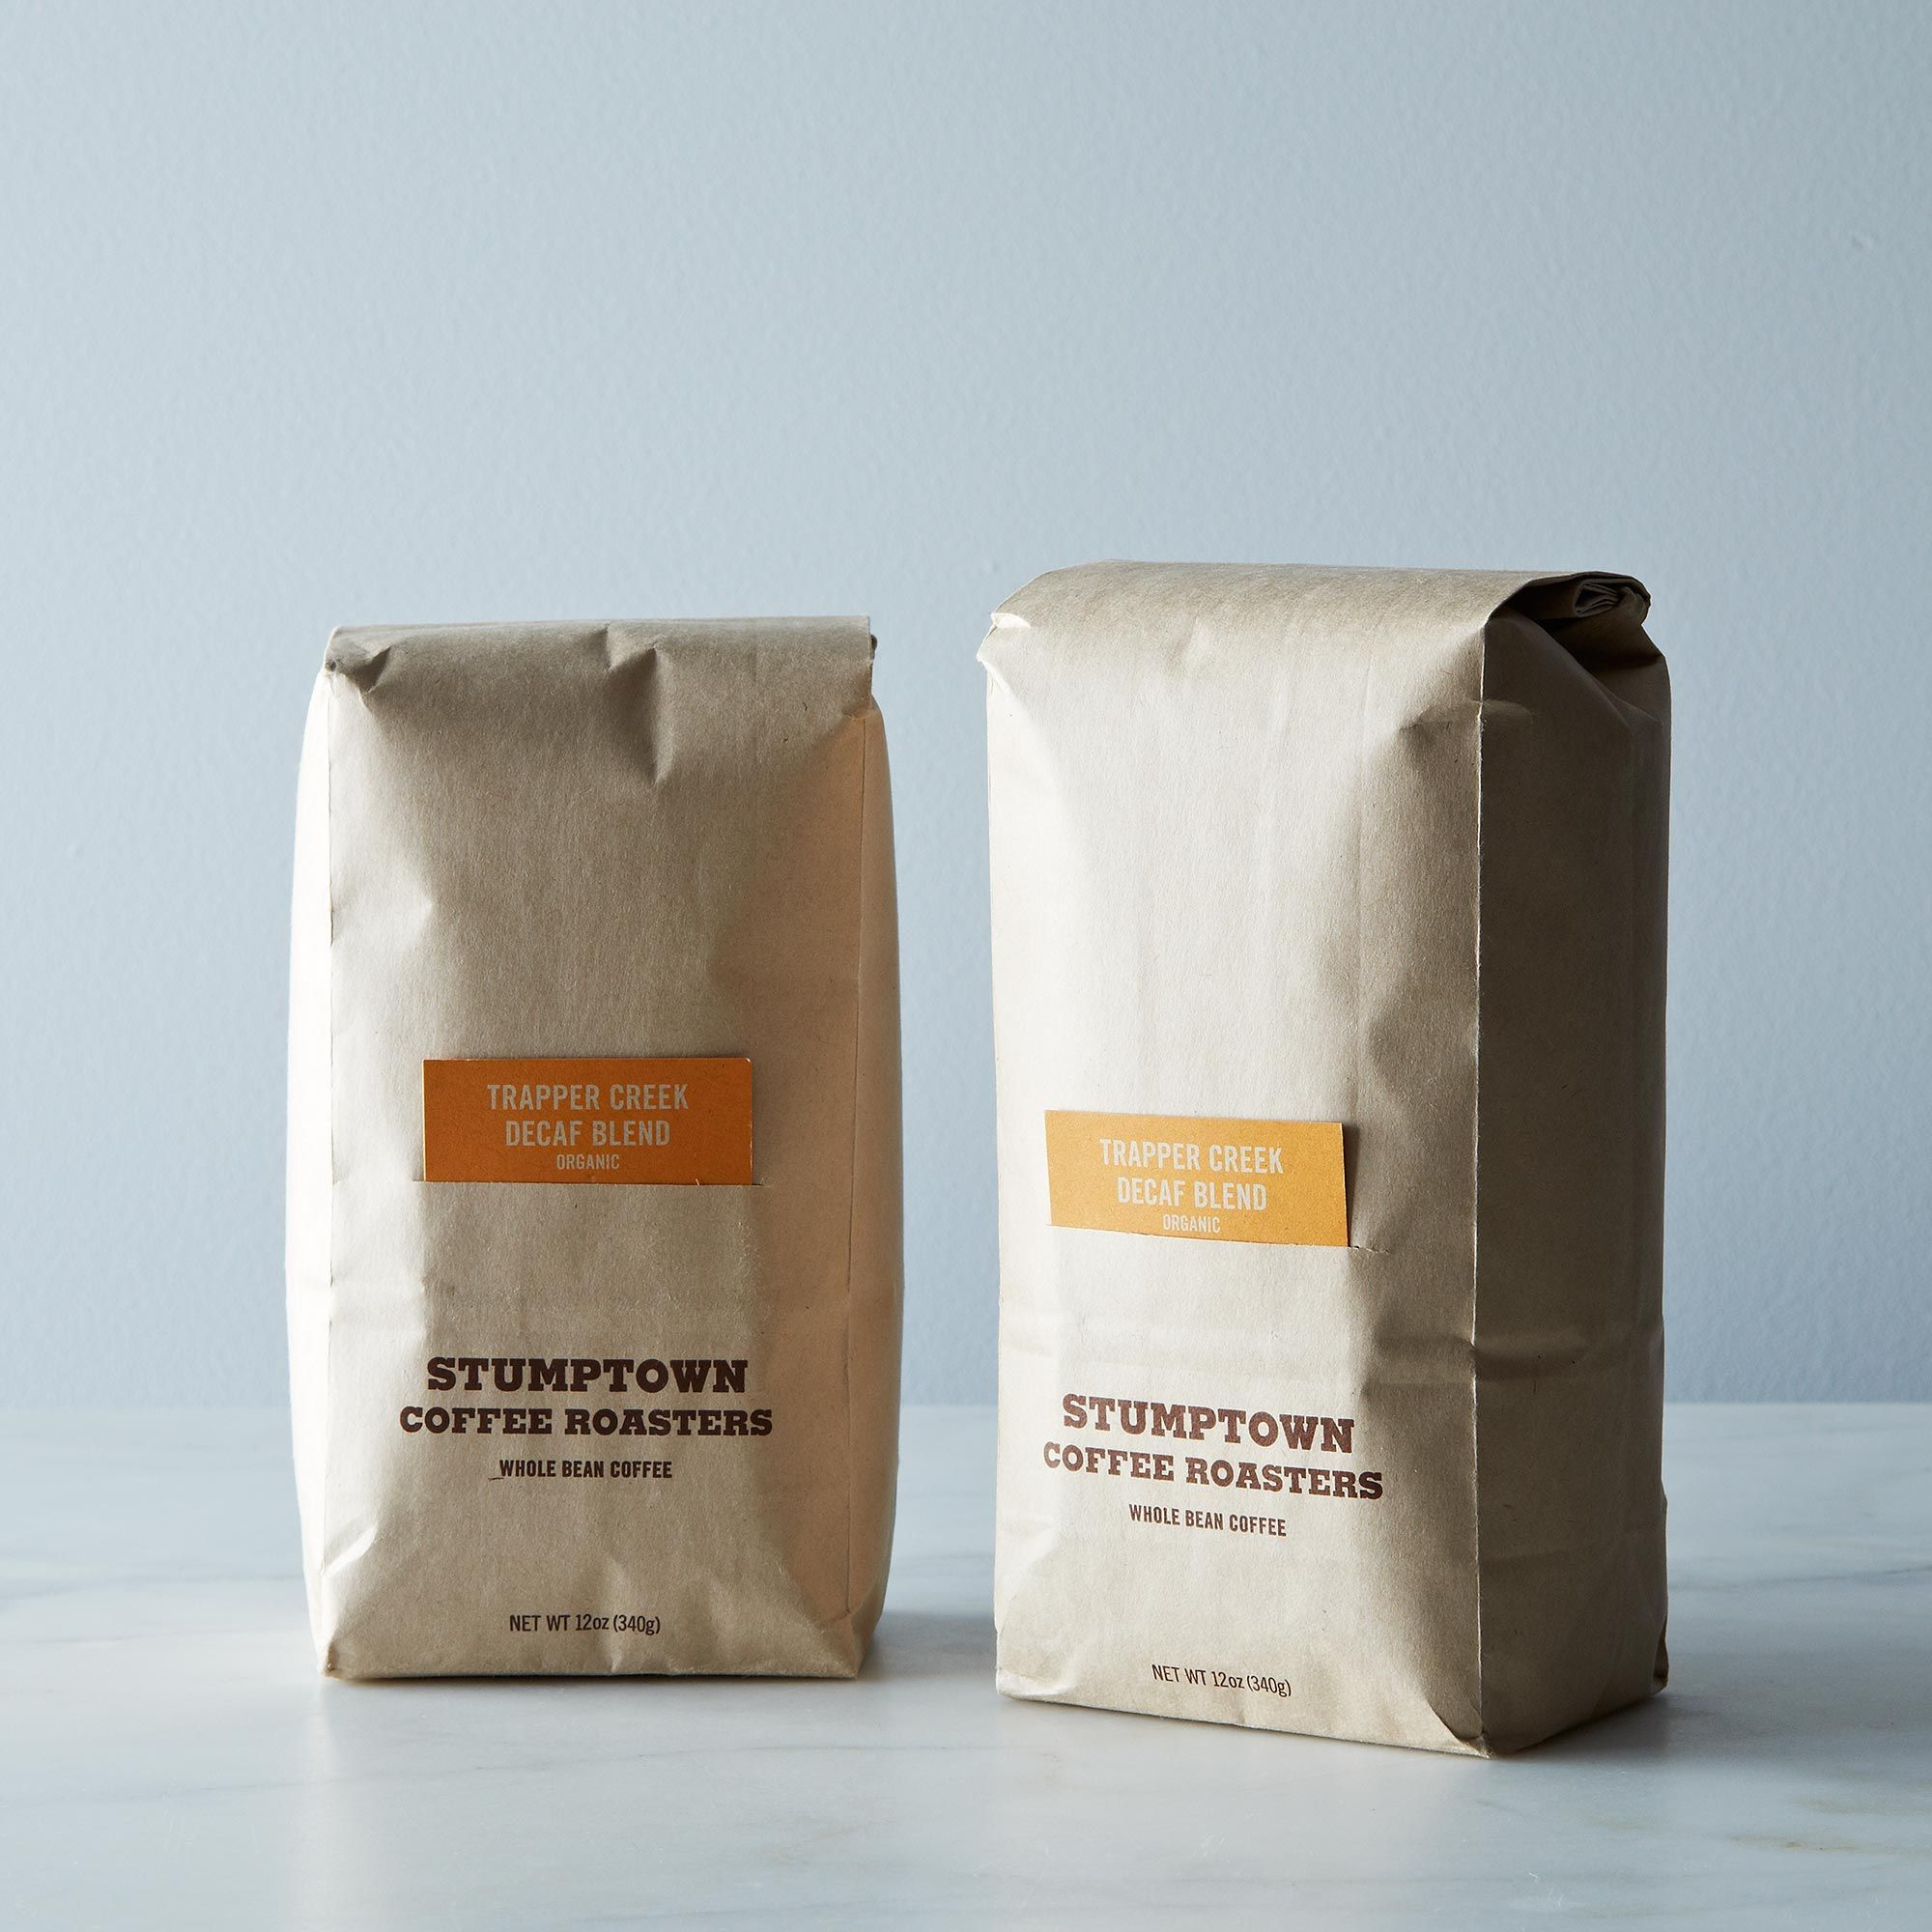 4bc3e6e5 5fa8 4a52 8b96 666896d700cb  2013 0930 stumptown decaf coffee bundle of 2 007